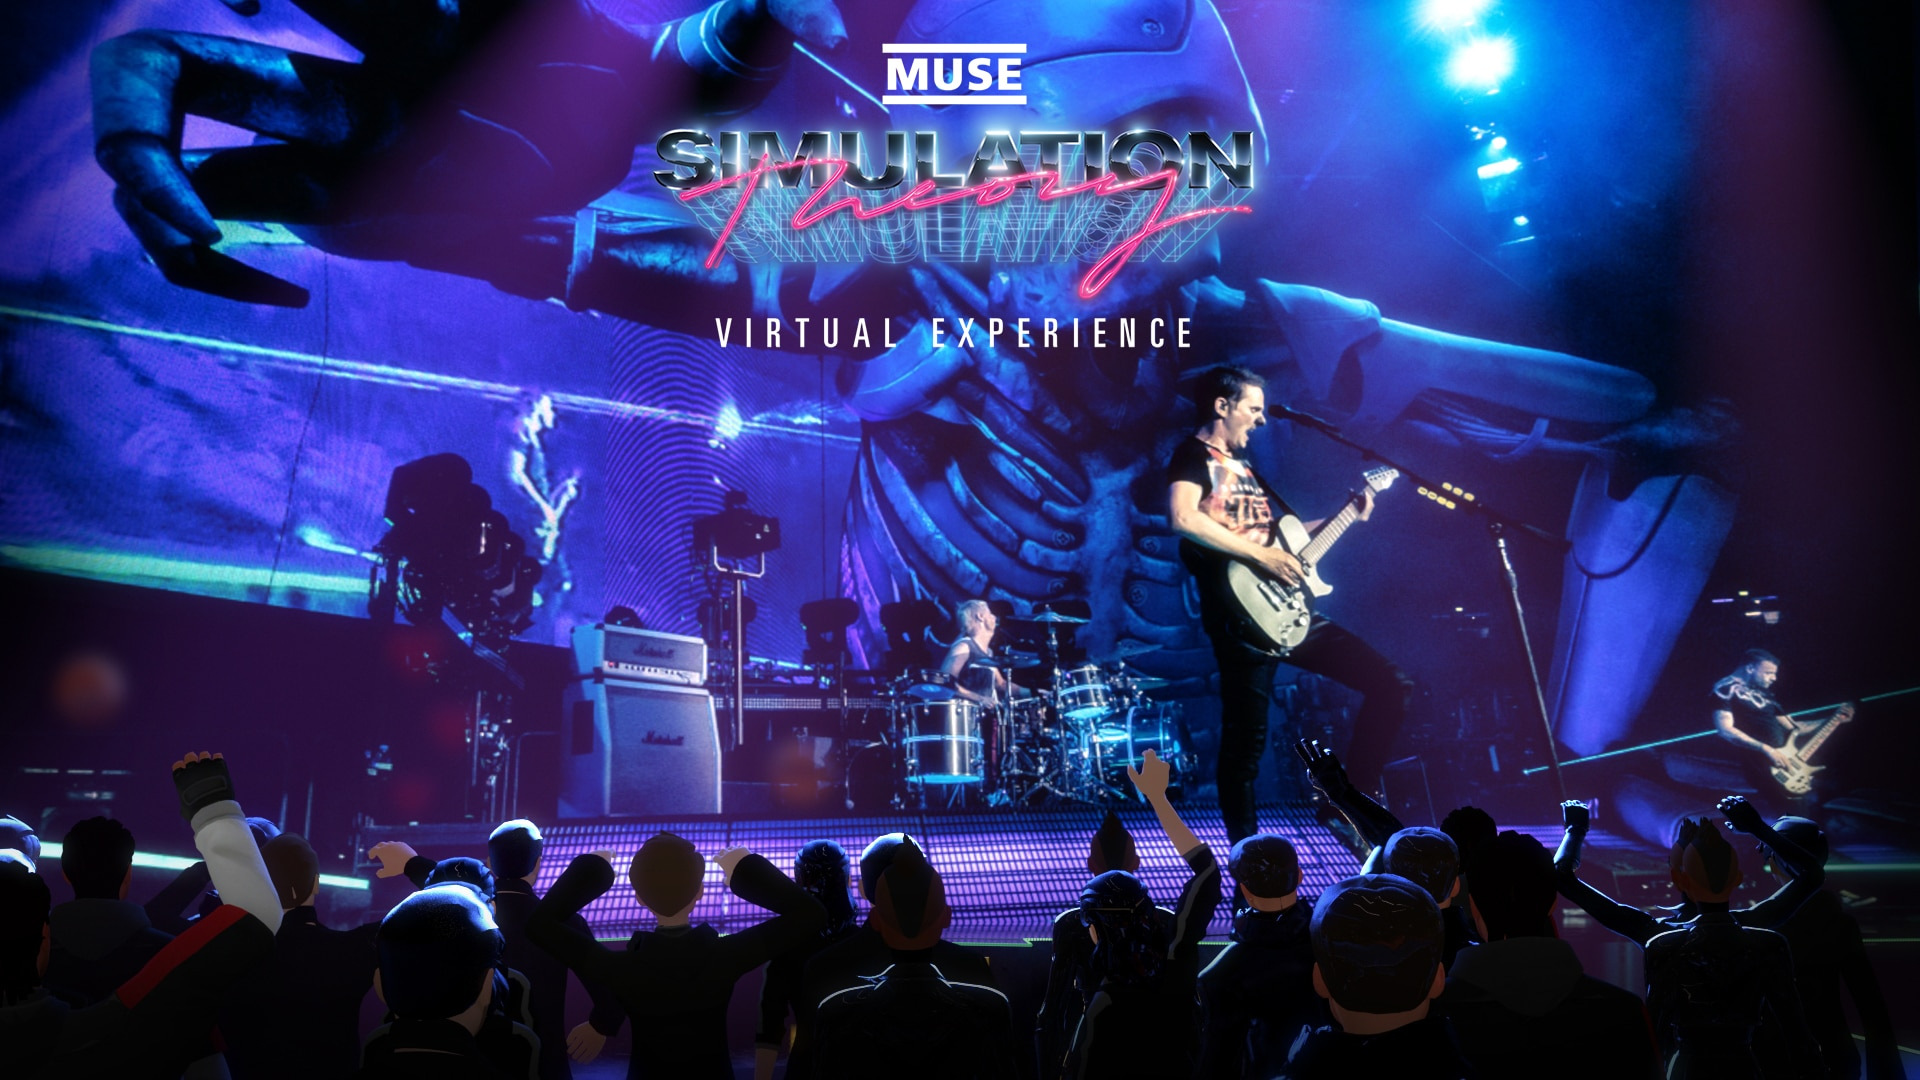 Muse Simulation Theory Experience VR